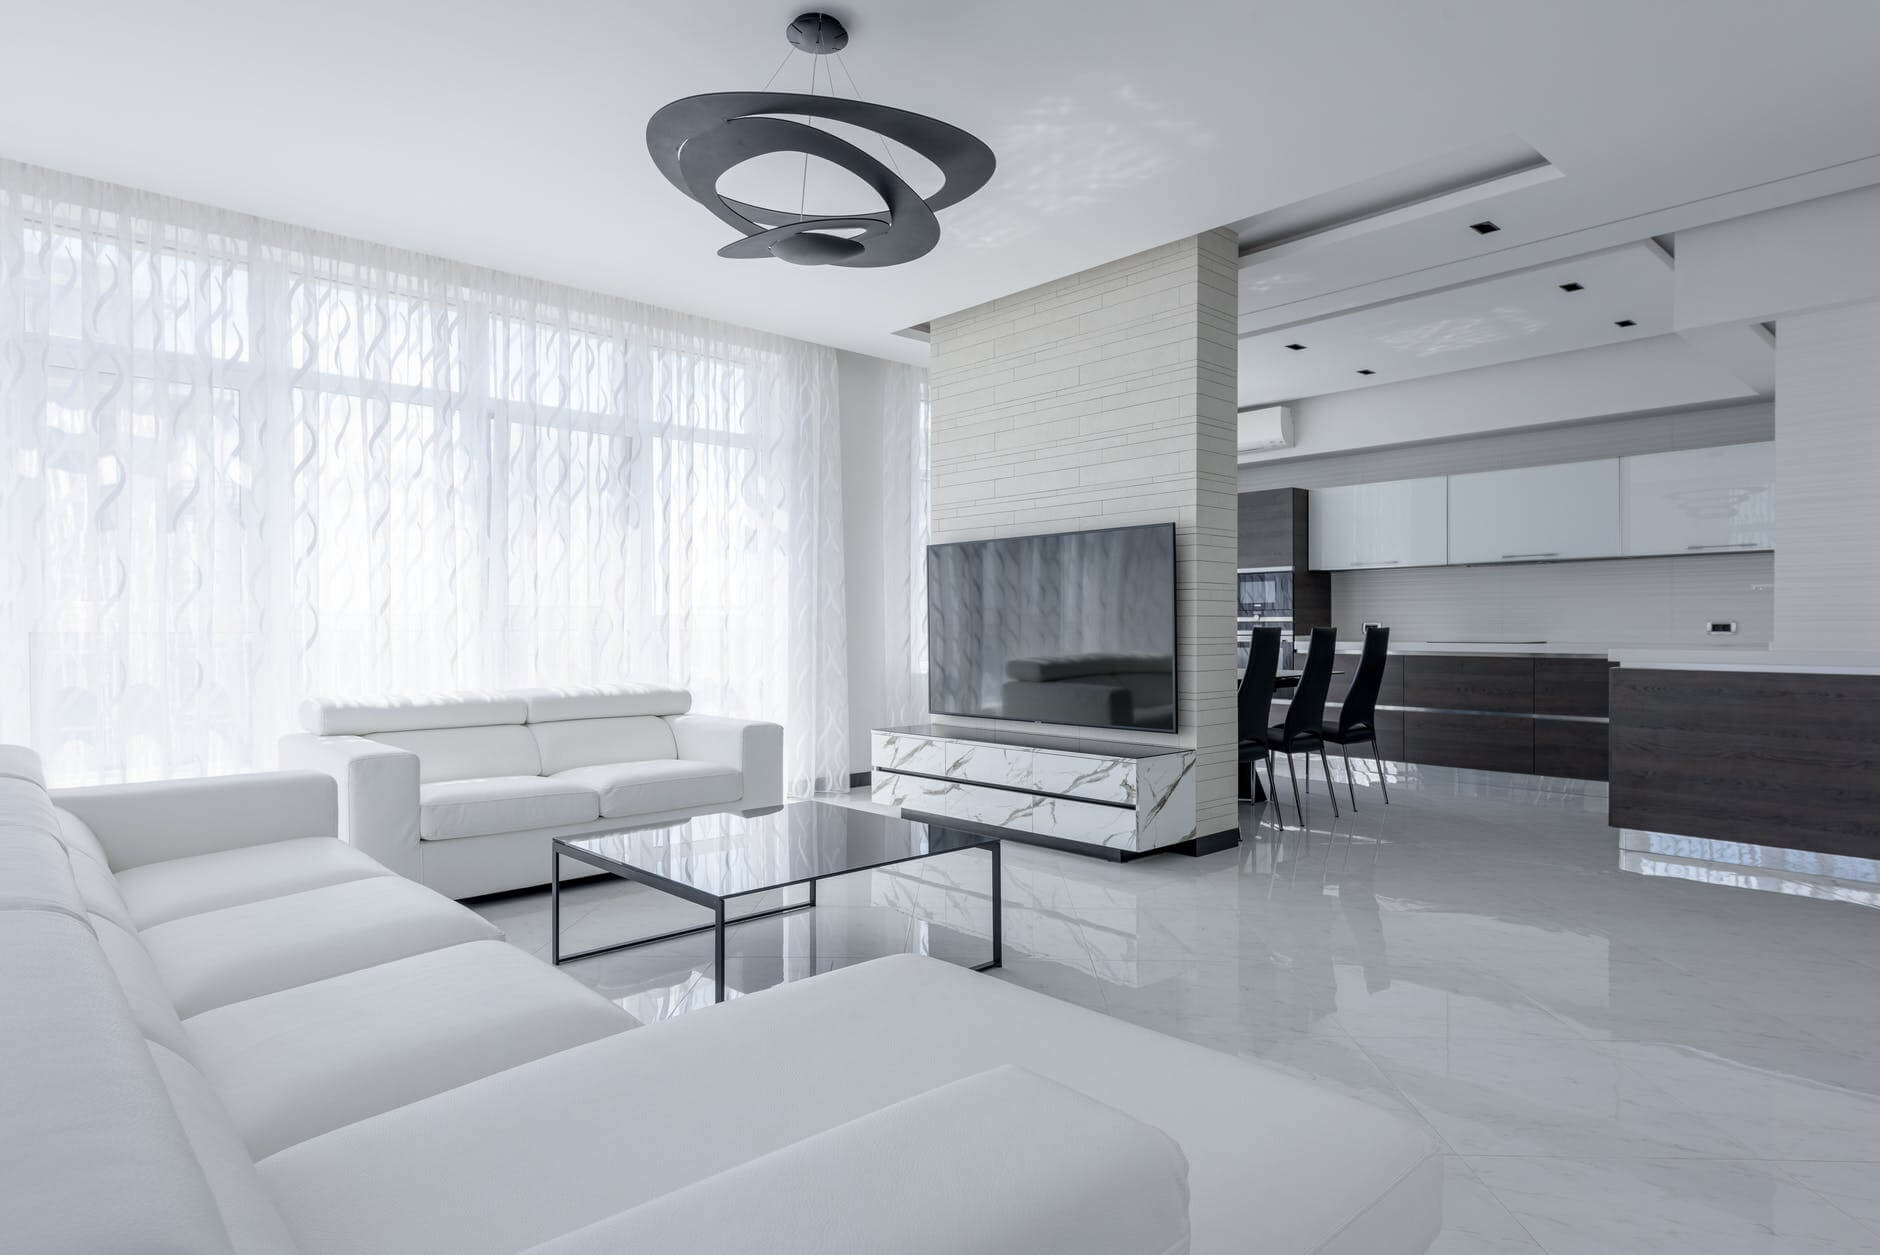 bright modern house interior with furniture